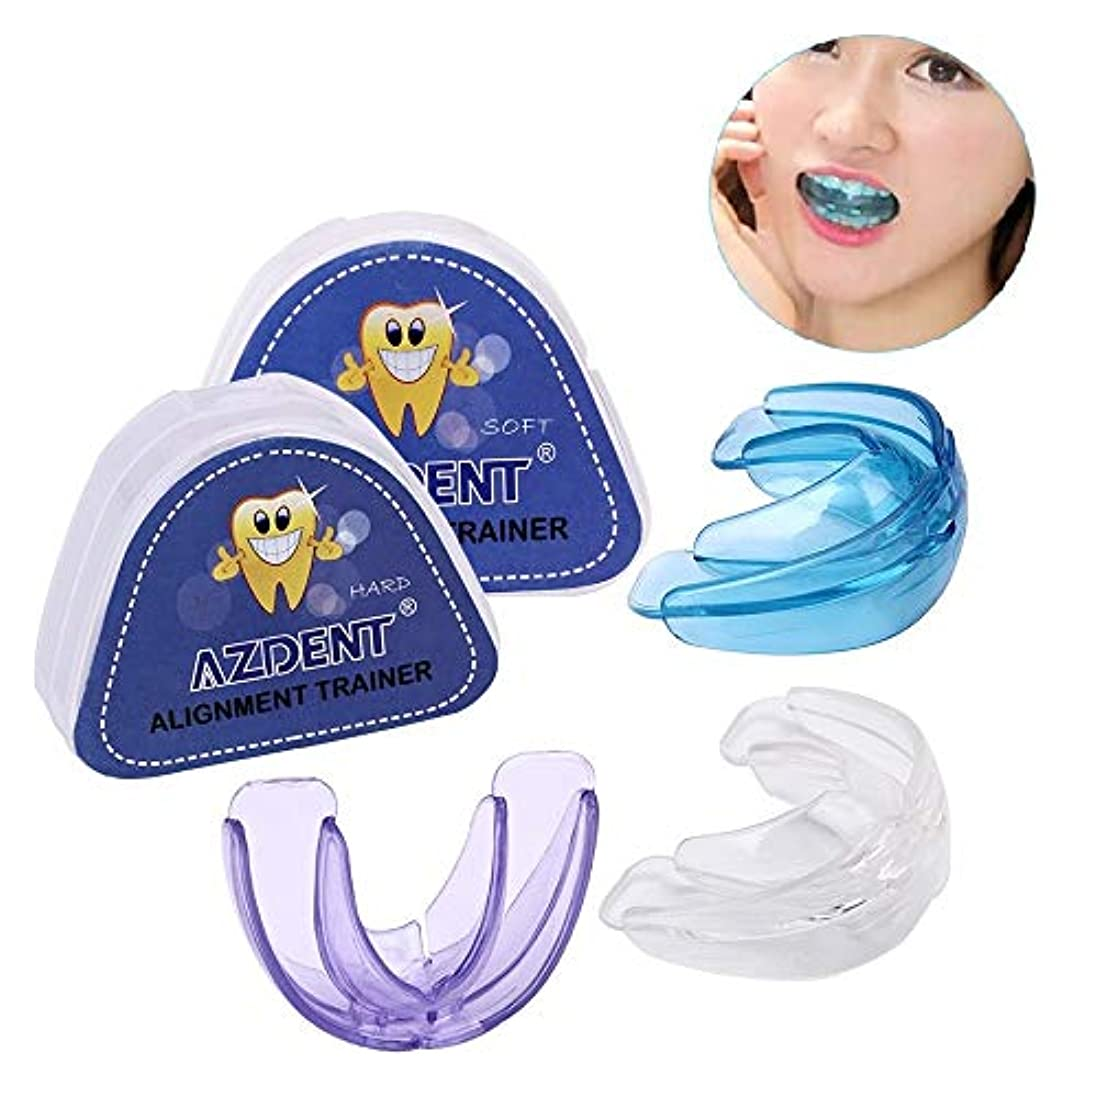 フォーマットティーンエイジャーダンプ1 SET(SOFT+HARD) Pro Silicone Tooth Orthodontic Dental Appliance Trainer Alignment Braces For Teeth Straight Alignment...